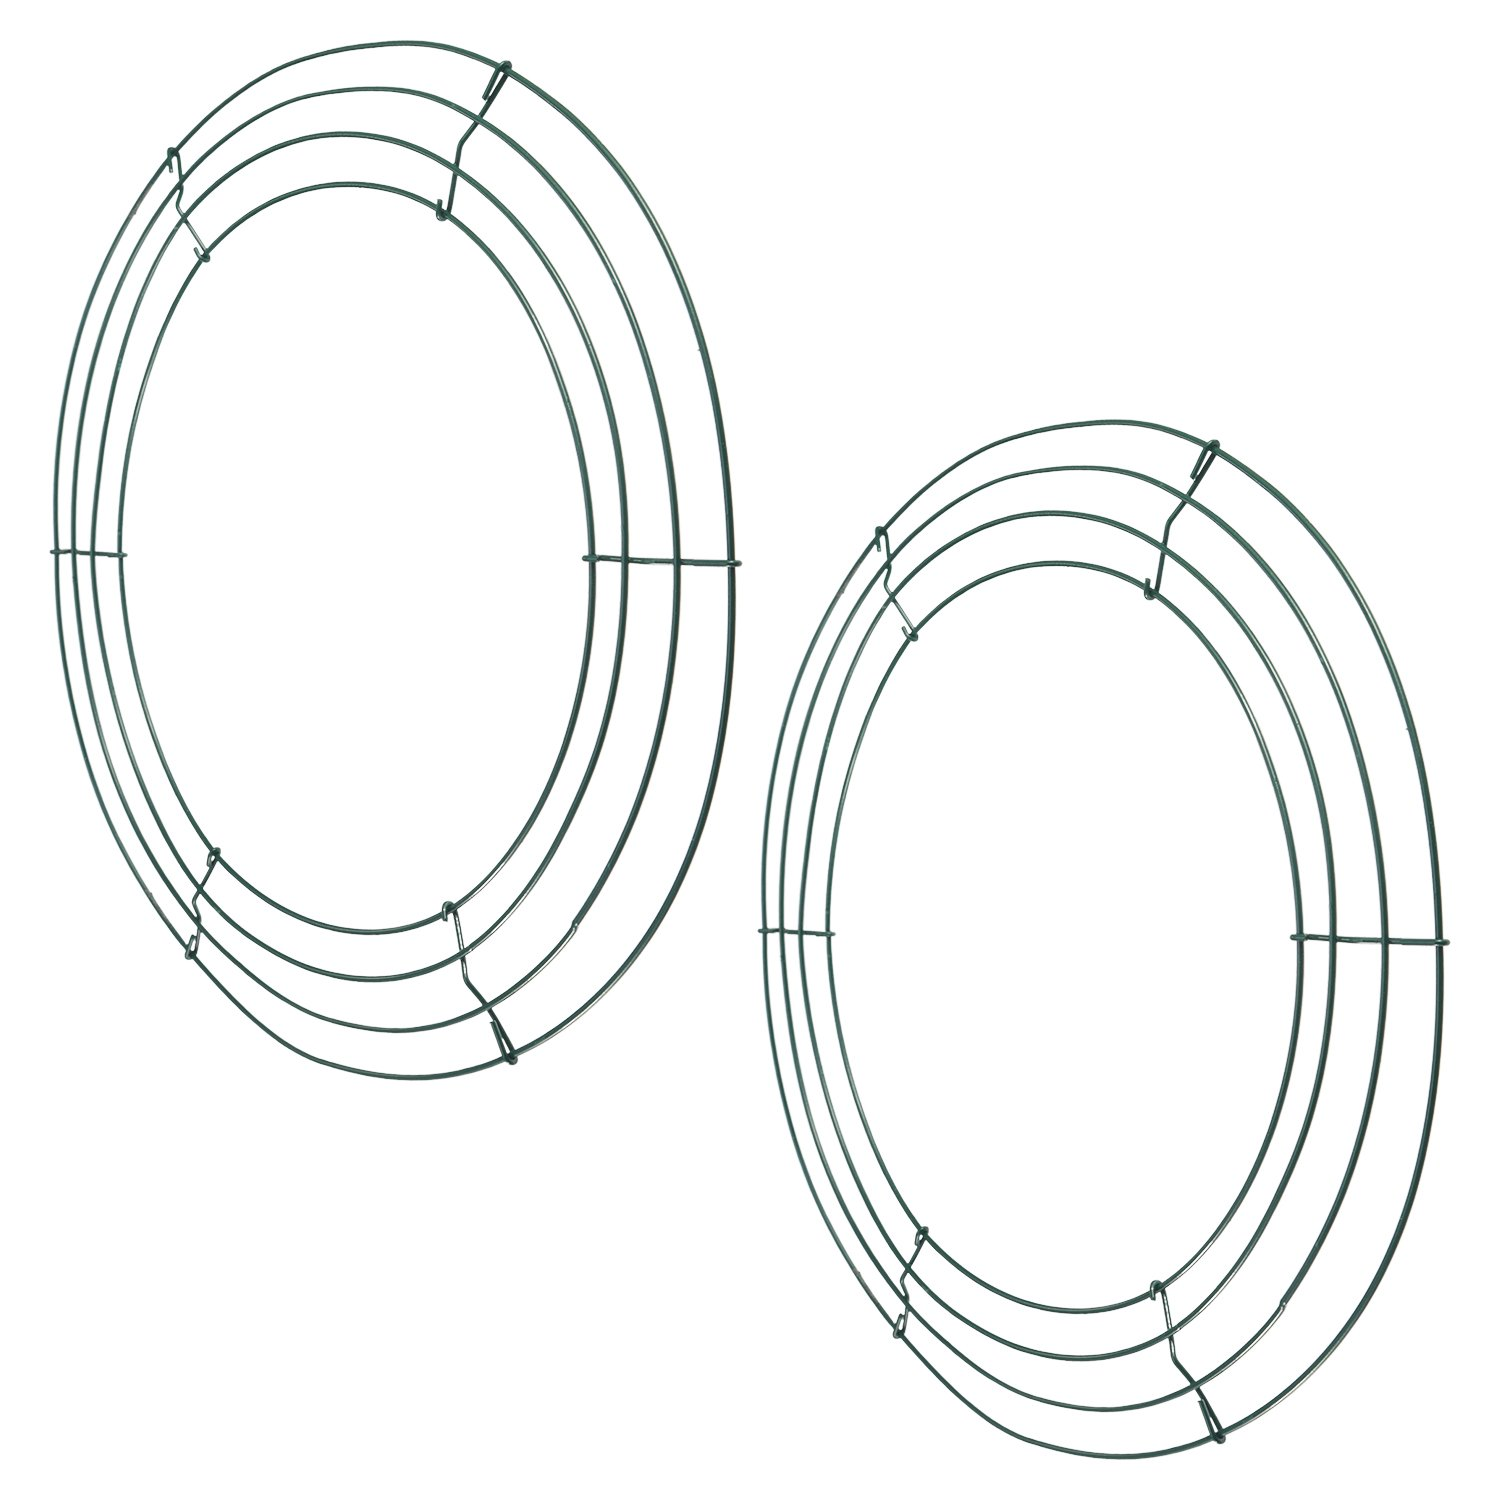 2 Pack Metal Wire Wreath Frame 14 Inch Deep Green Wire Rings for Christmas Holidays Floral Arrangements Home Party Decorations BBTO